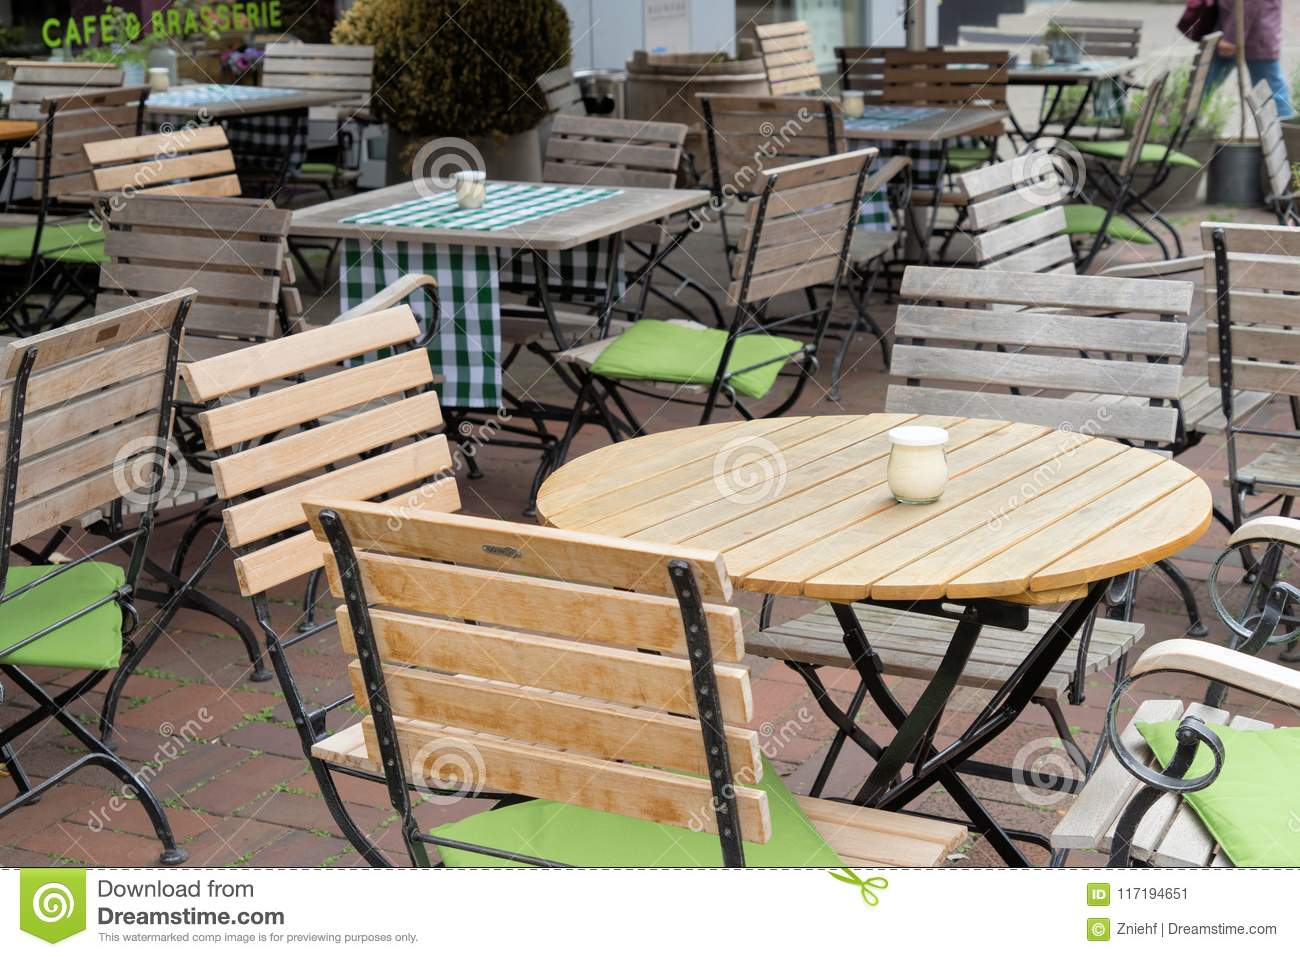 Unoccupied Chairs And Tables In A Garden Restaurant With Table